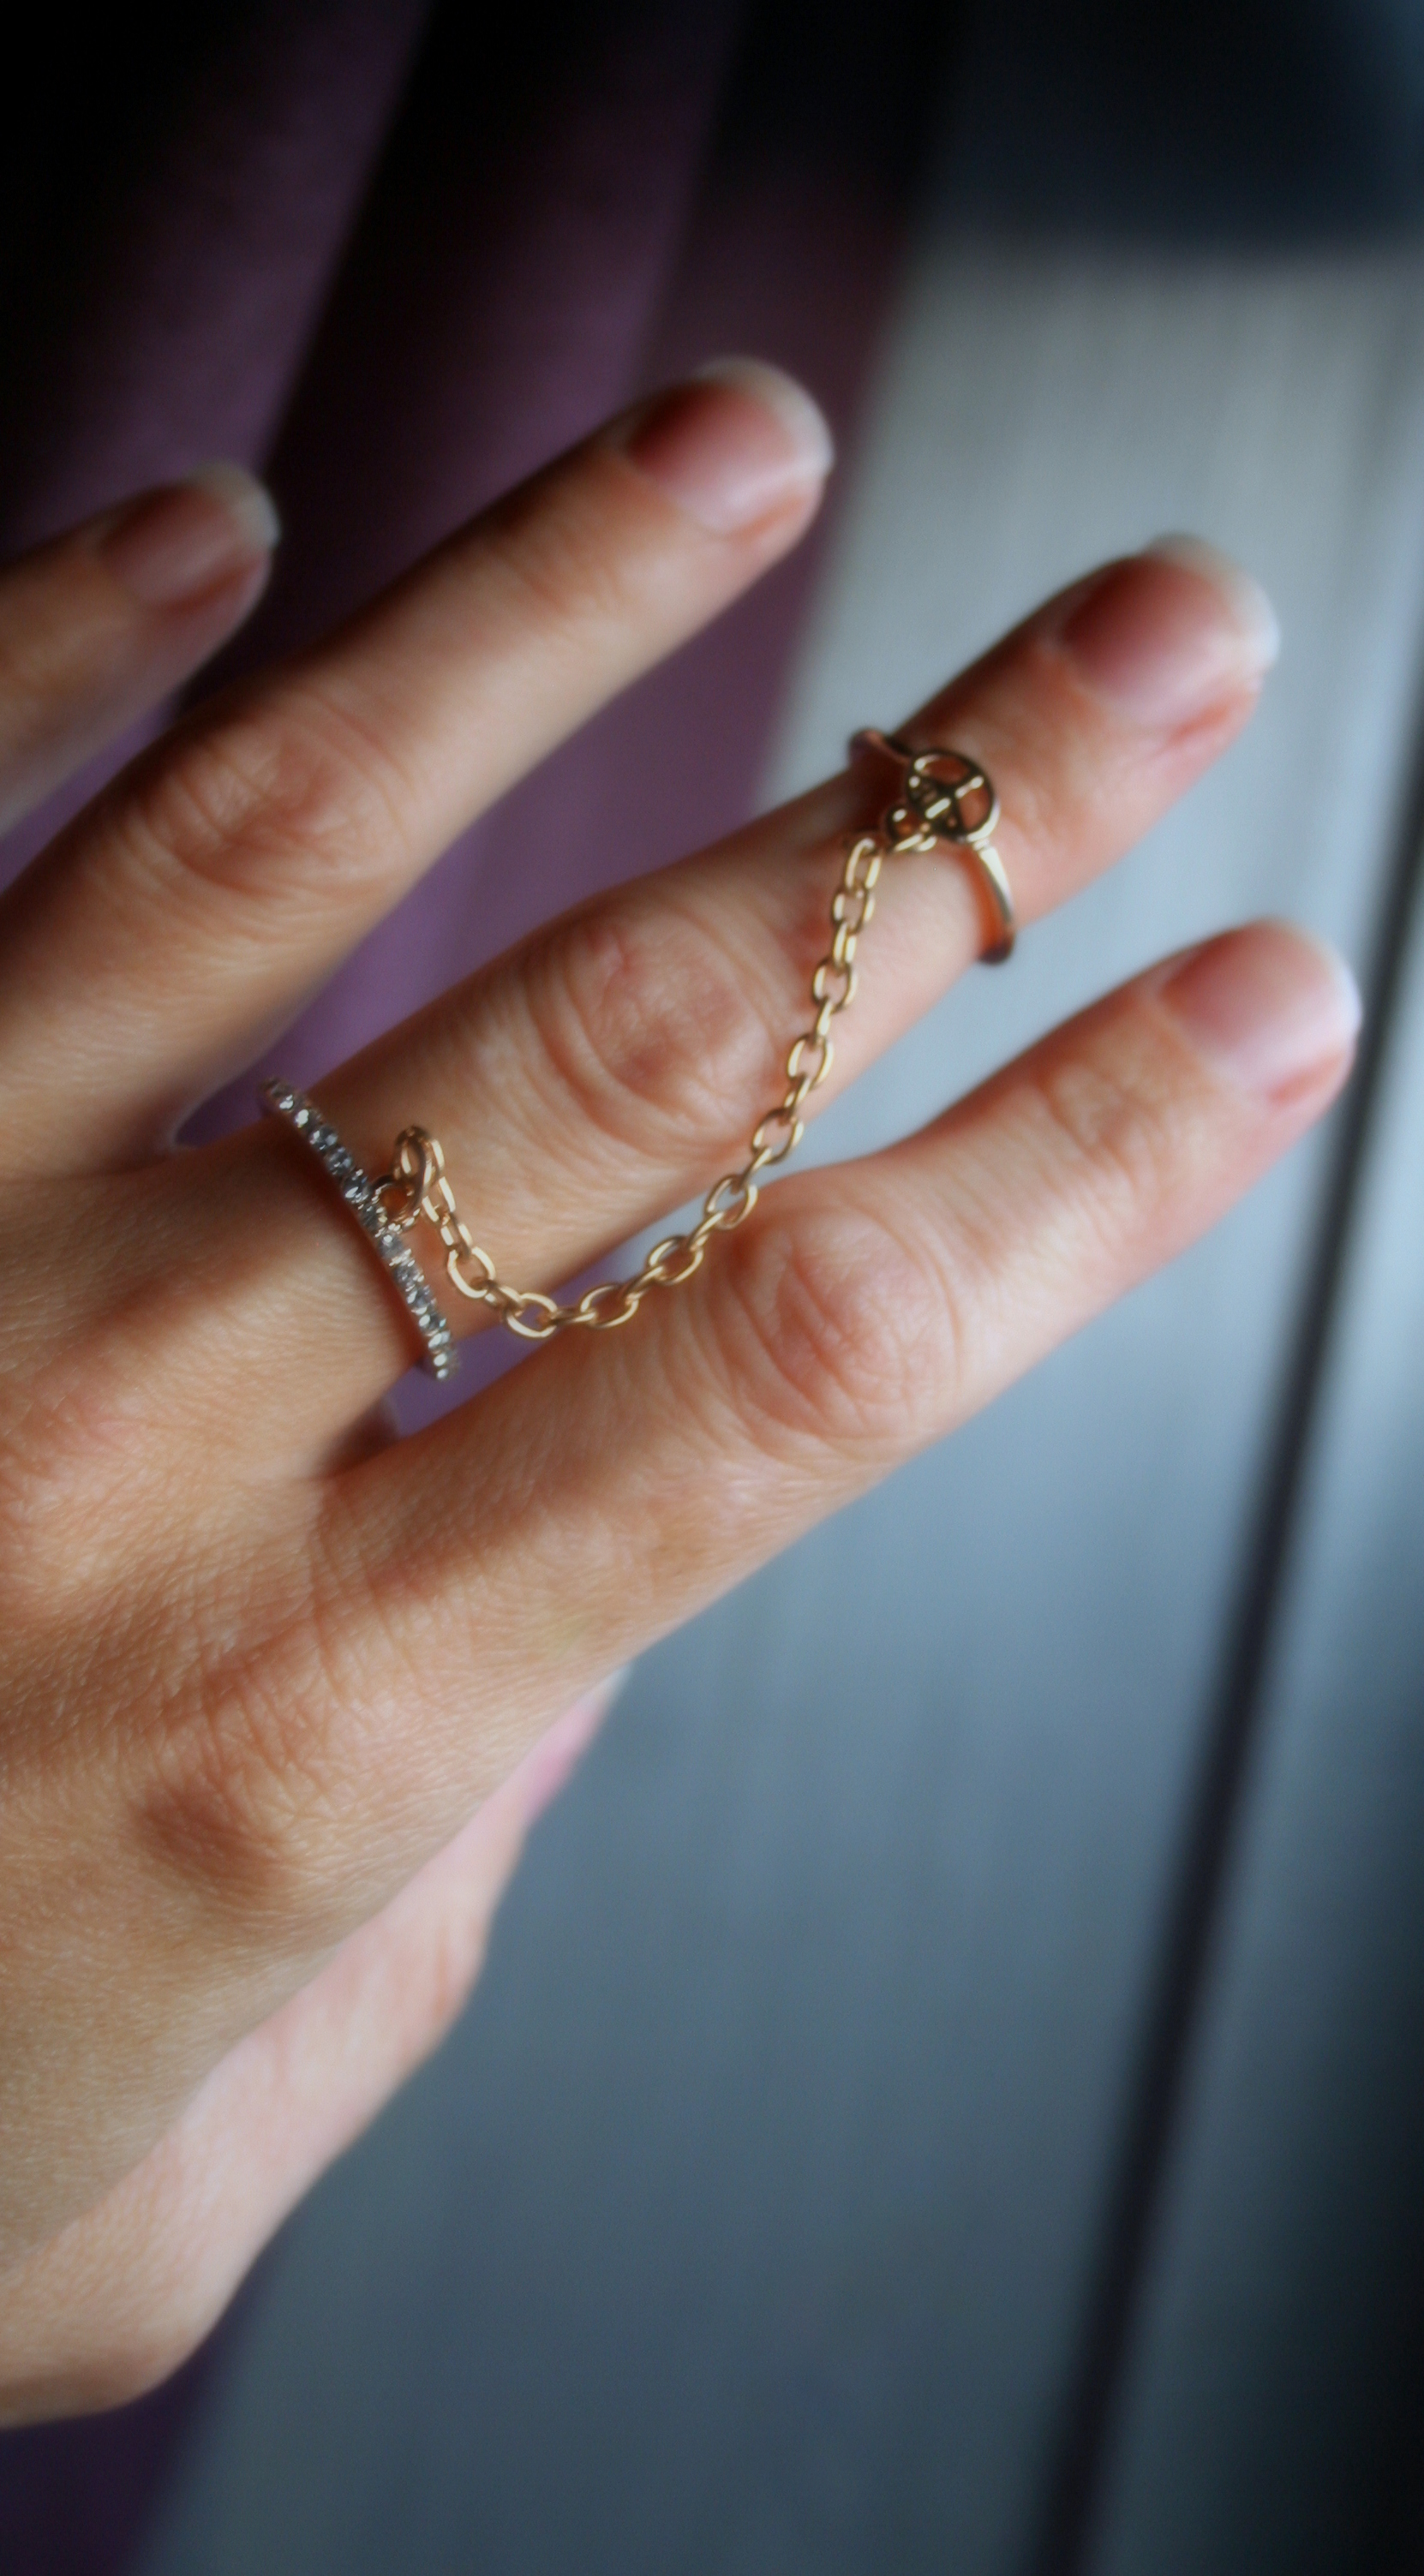 Double Midi Knuckle Joint Ring Peace Symbol With Chain And Crystals